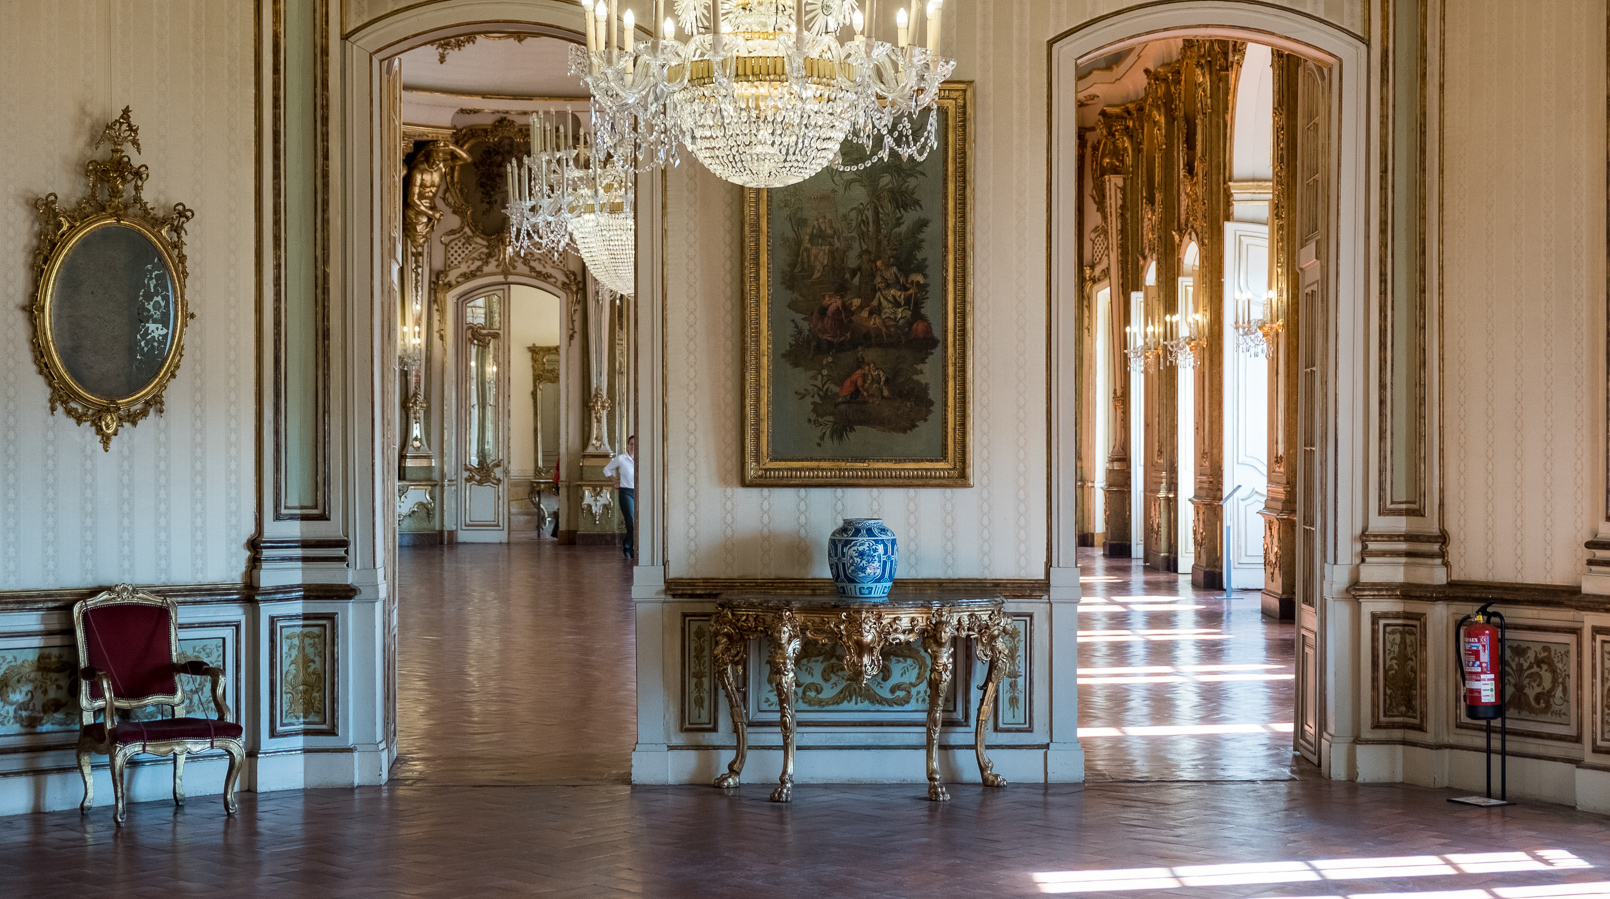 Le Fashionaire The portuguese Palace you need to know palace queluz white chairs ornate rooms paintings red carpet 5987F EN